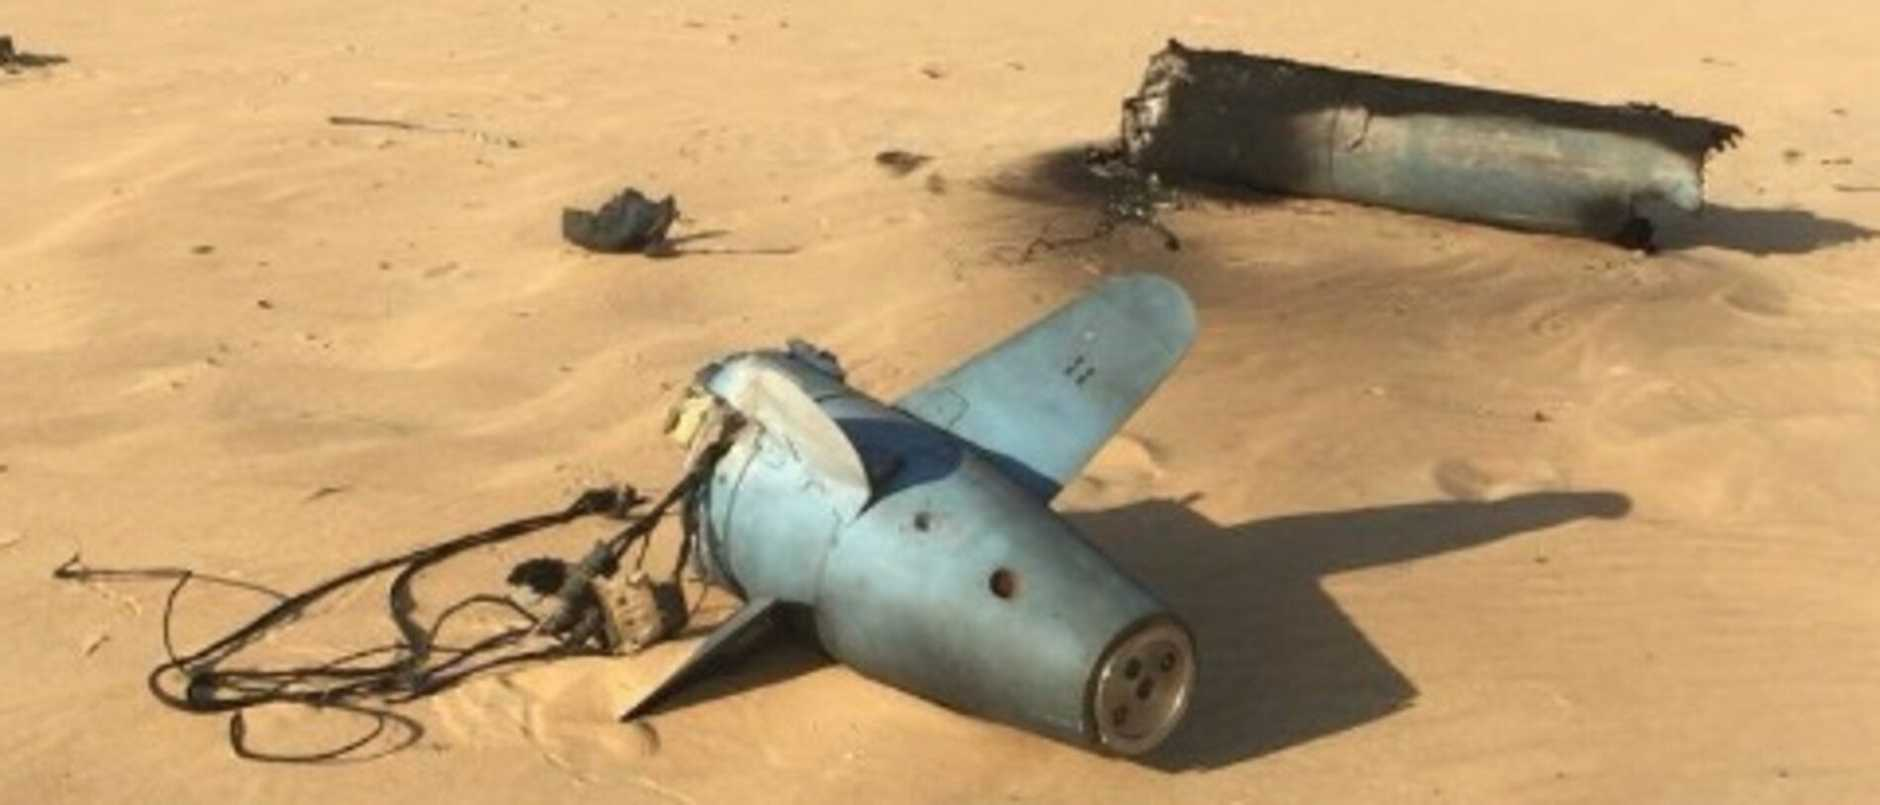 Another view of the wreckage purportedly from an Iranian cruise missile.